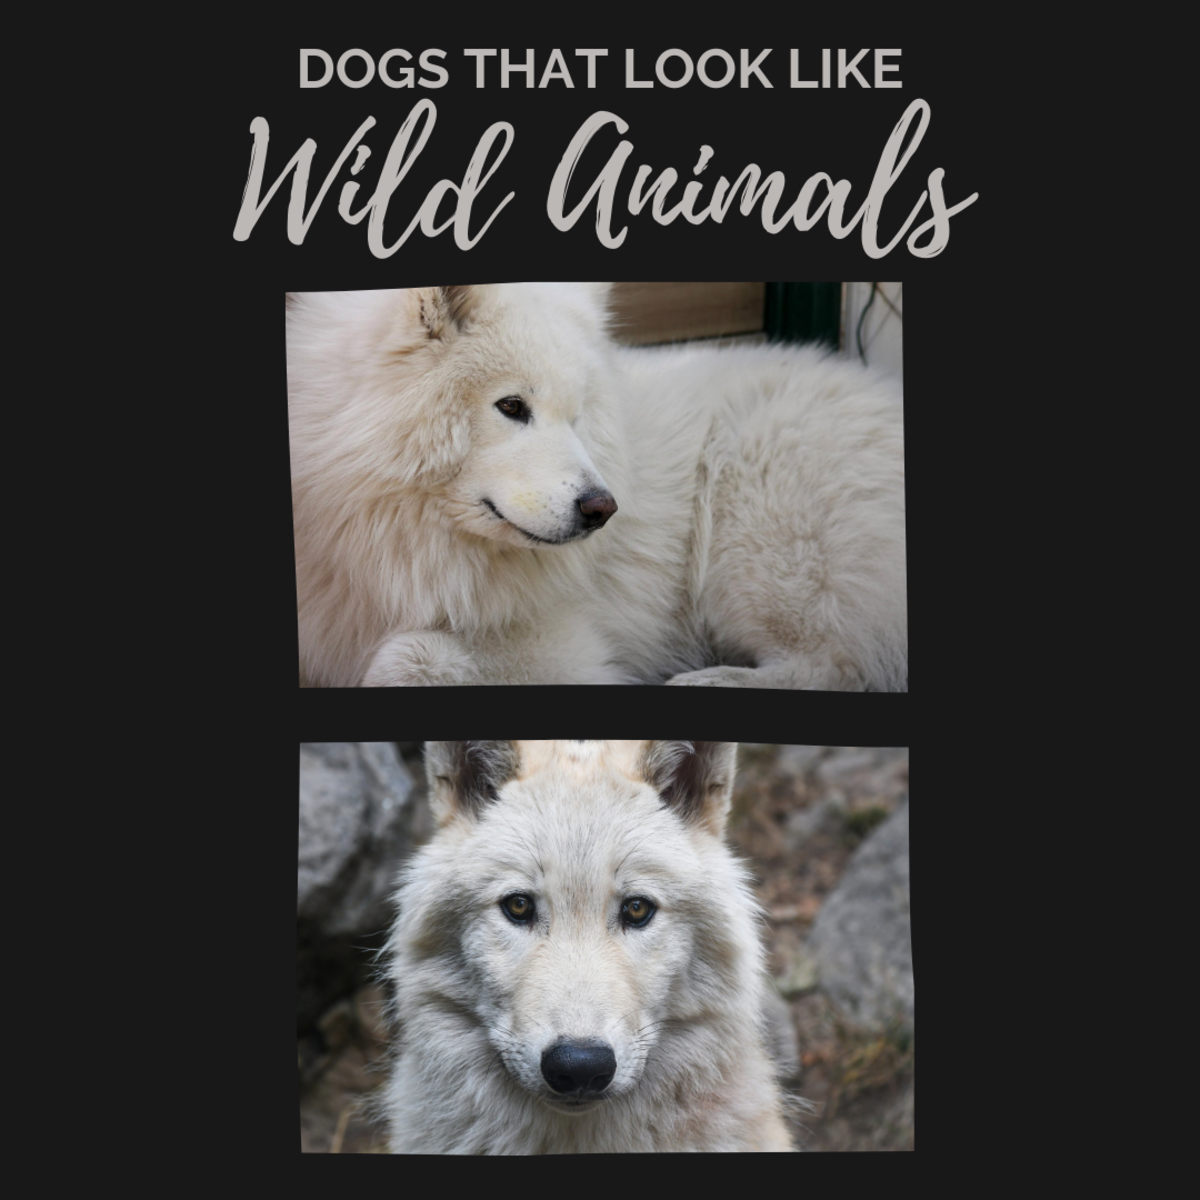 Samoyeds look somewhat similar to white wolves when the two are compared side by side.